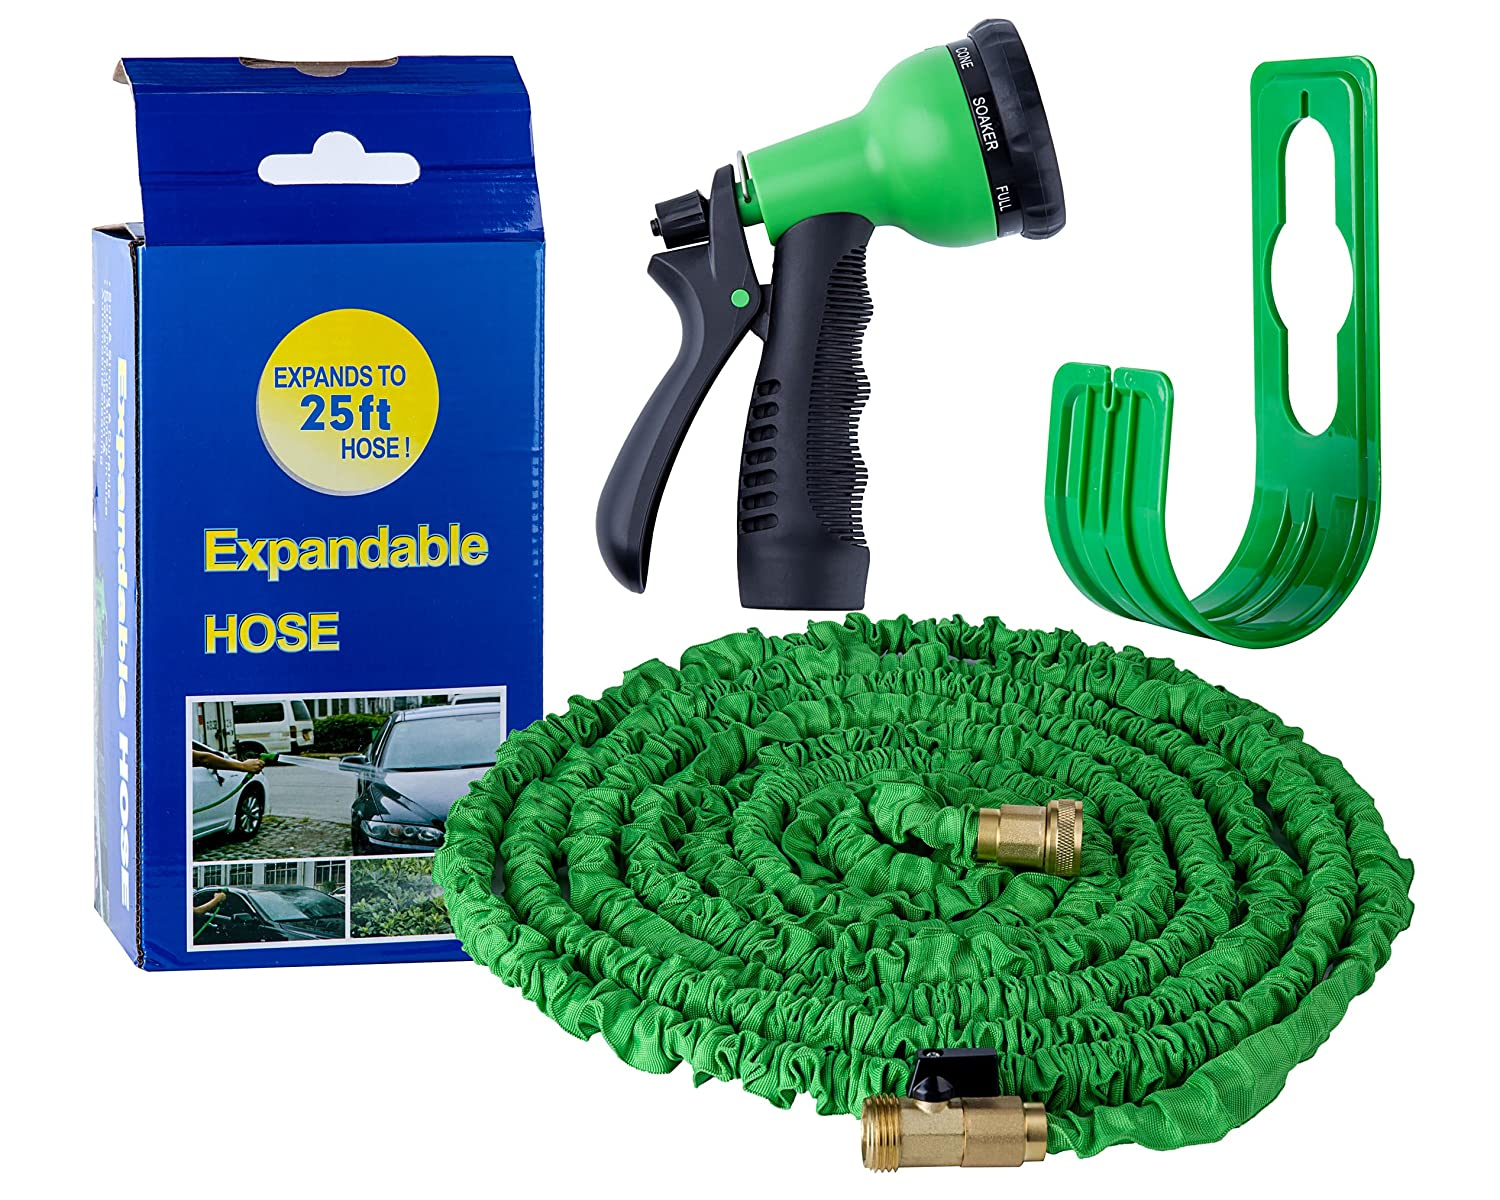 Basecamp Hose Expandable Garden Hose - Strongest Expanding Garden Watering Tube With All Brass Connectors, 8-pattern Sprayer Nozzle And High Pressure - Resistance Latex (25FT)